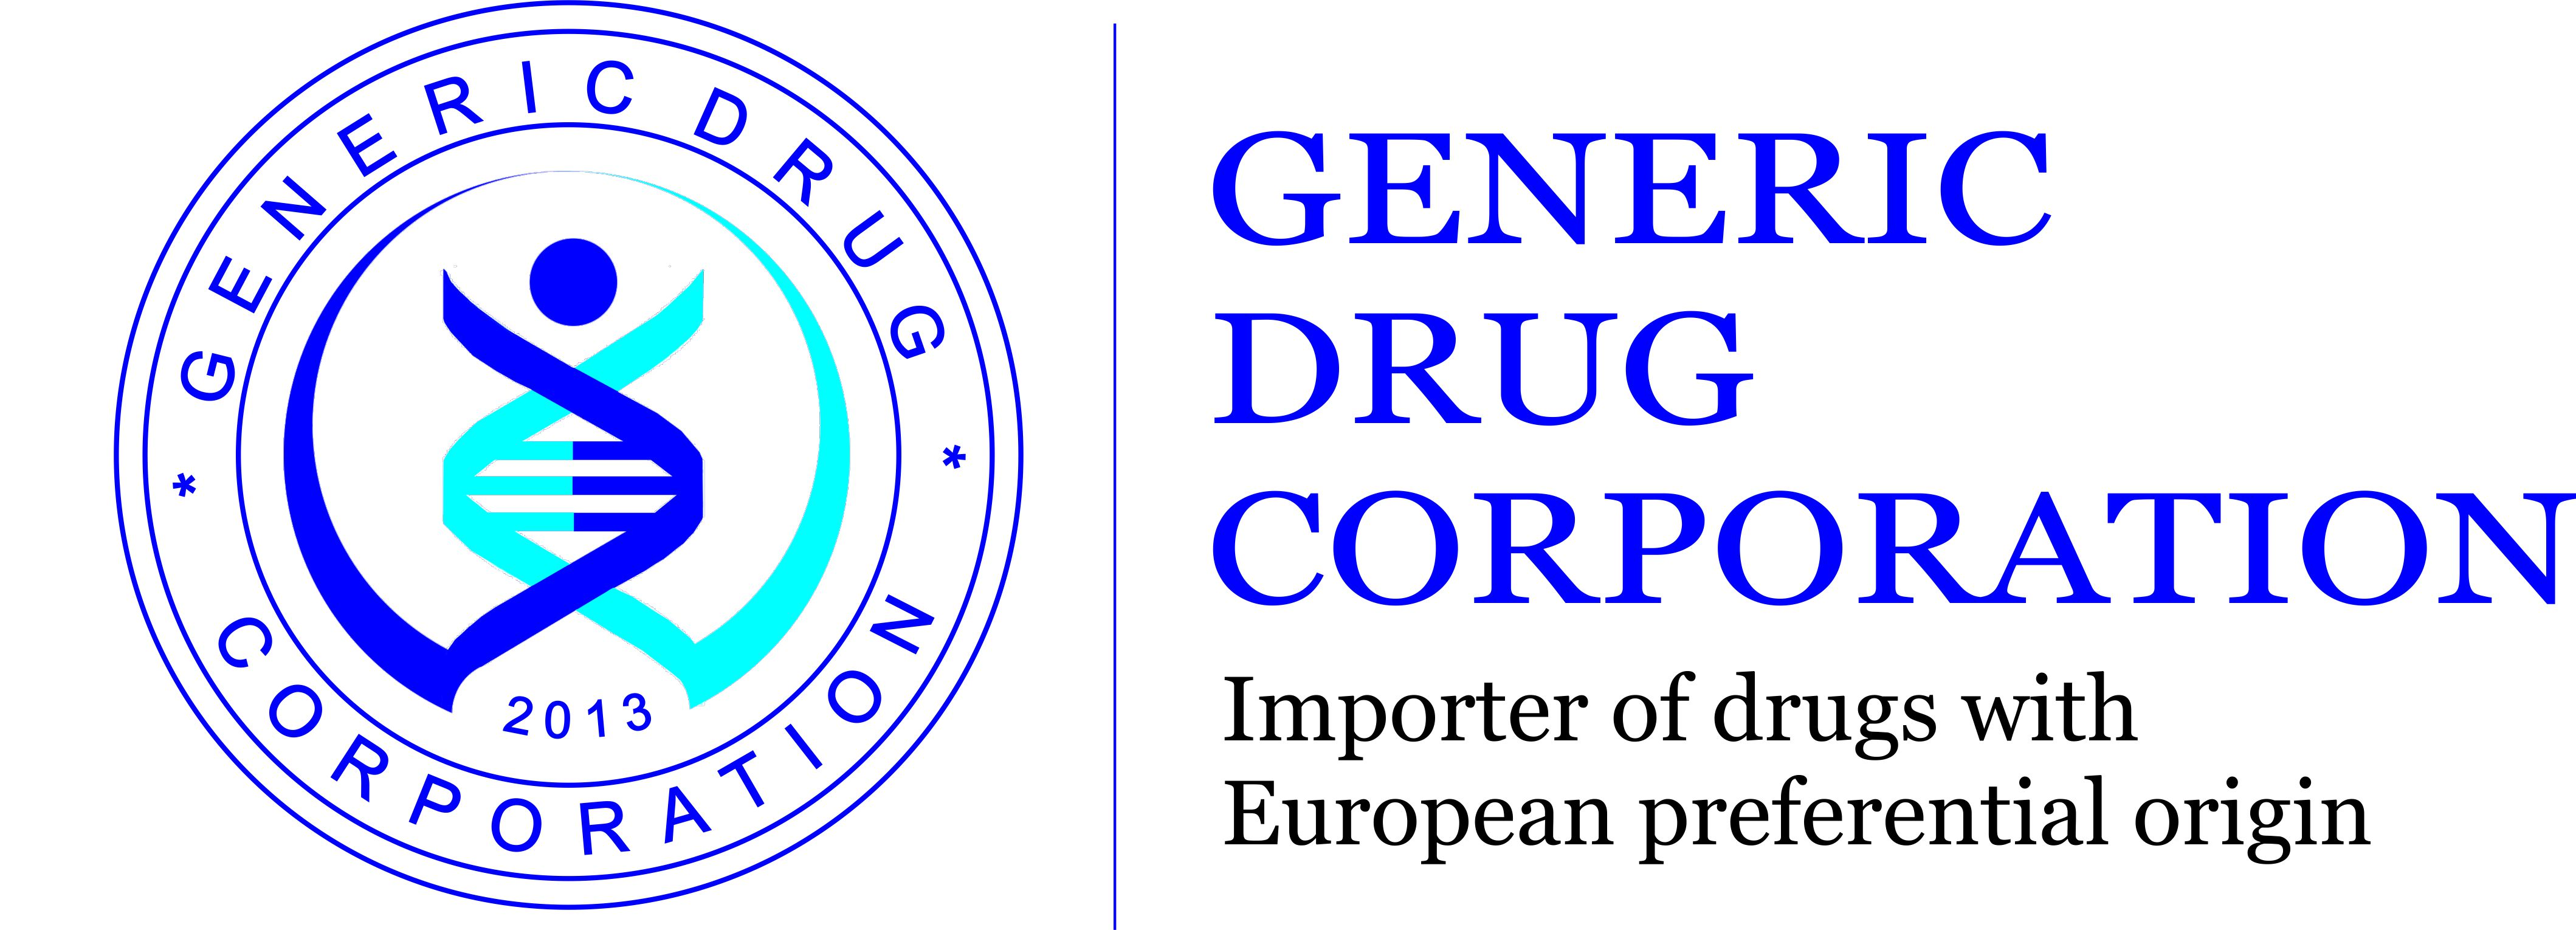 Generic Drug Corporation